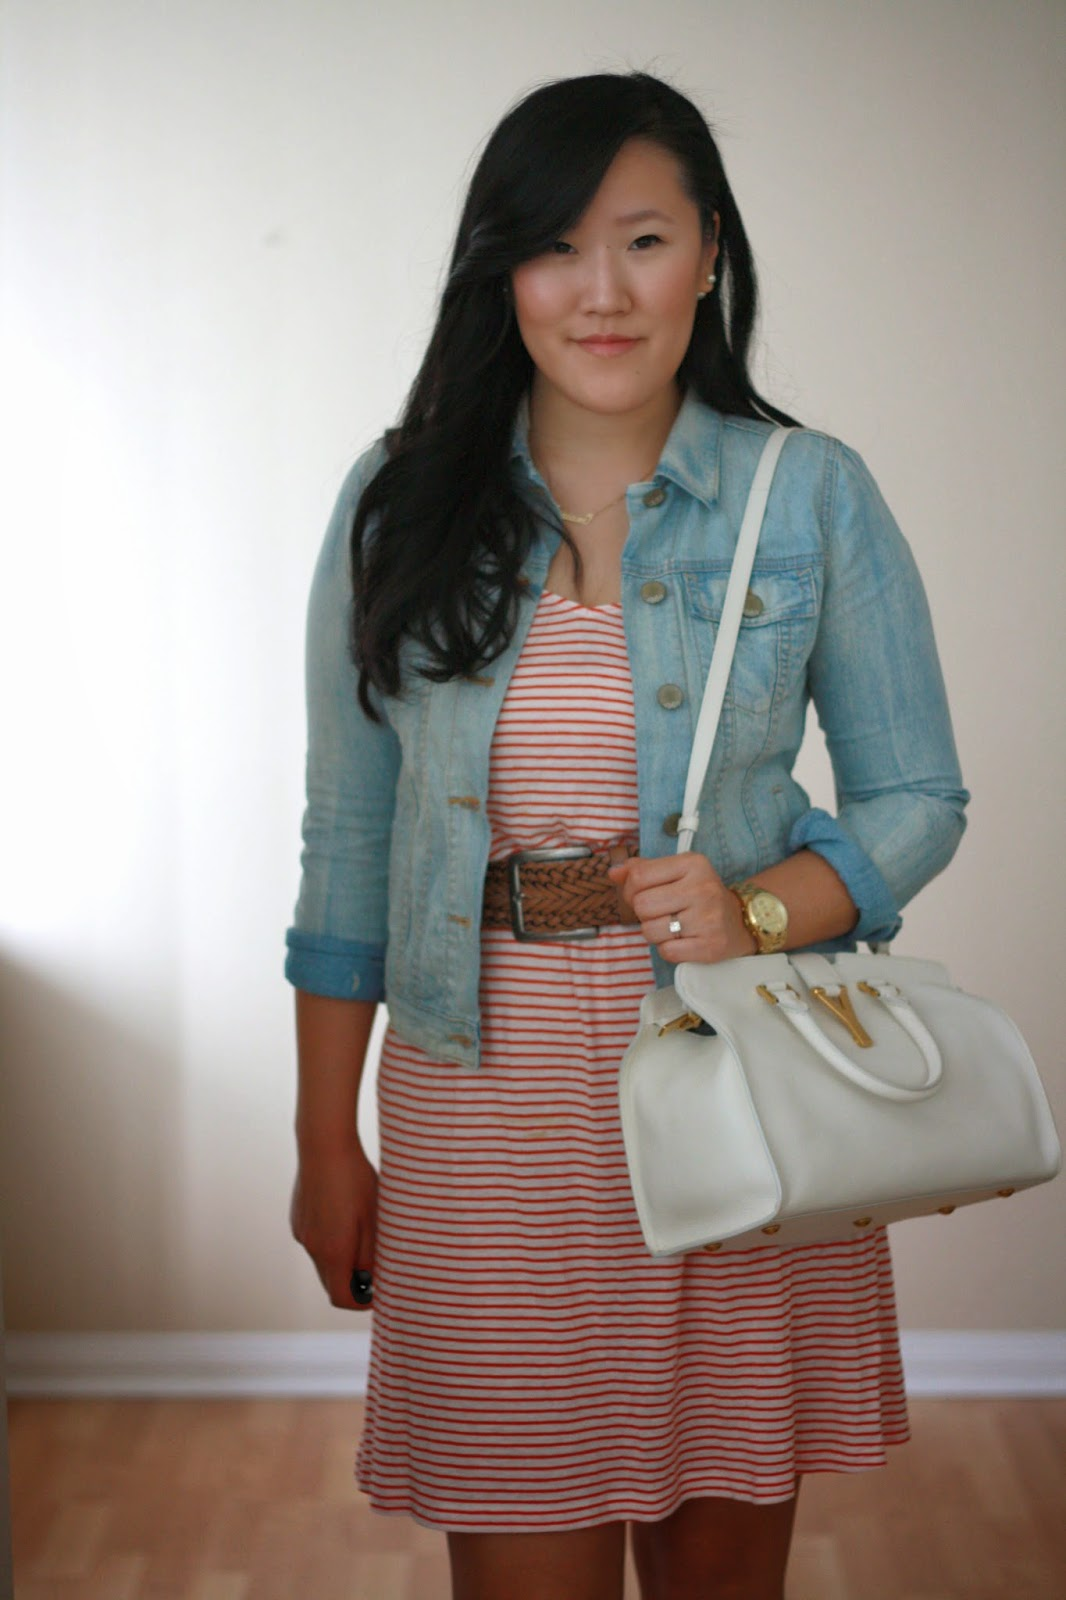 simplyxclassic, jcrew, stripes, candy stripes, ysl , ysl cabas, ysl handbag, gap denim, gap jacket, aldo shoes, heels, southern california blogger, blogger, fashion blogger, style blogger, ootd, outfit, summe